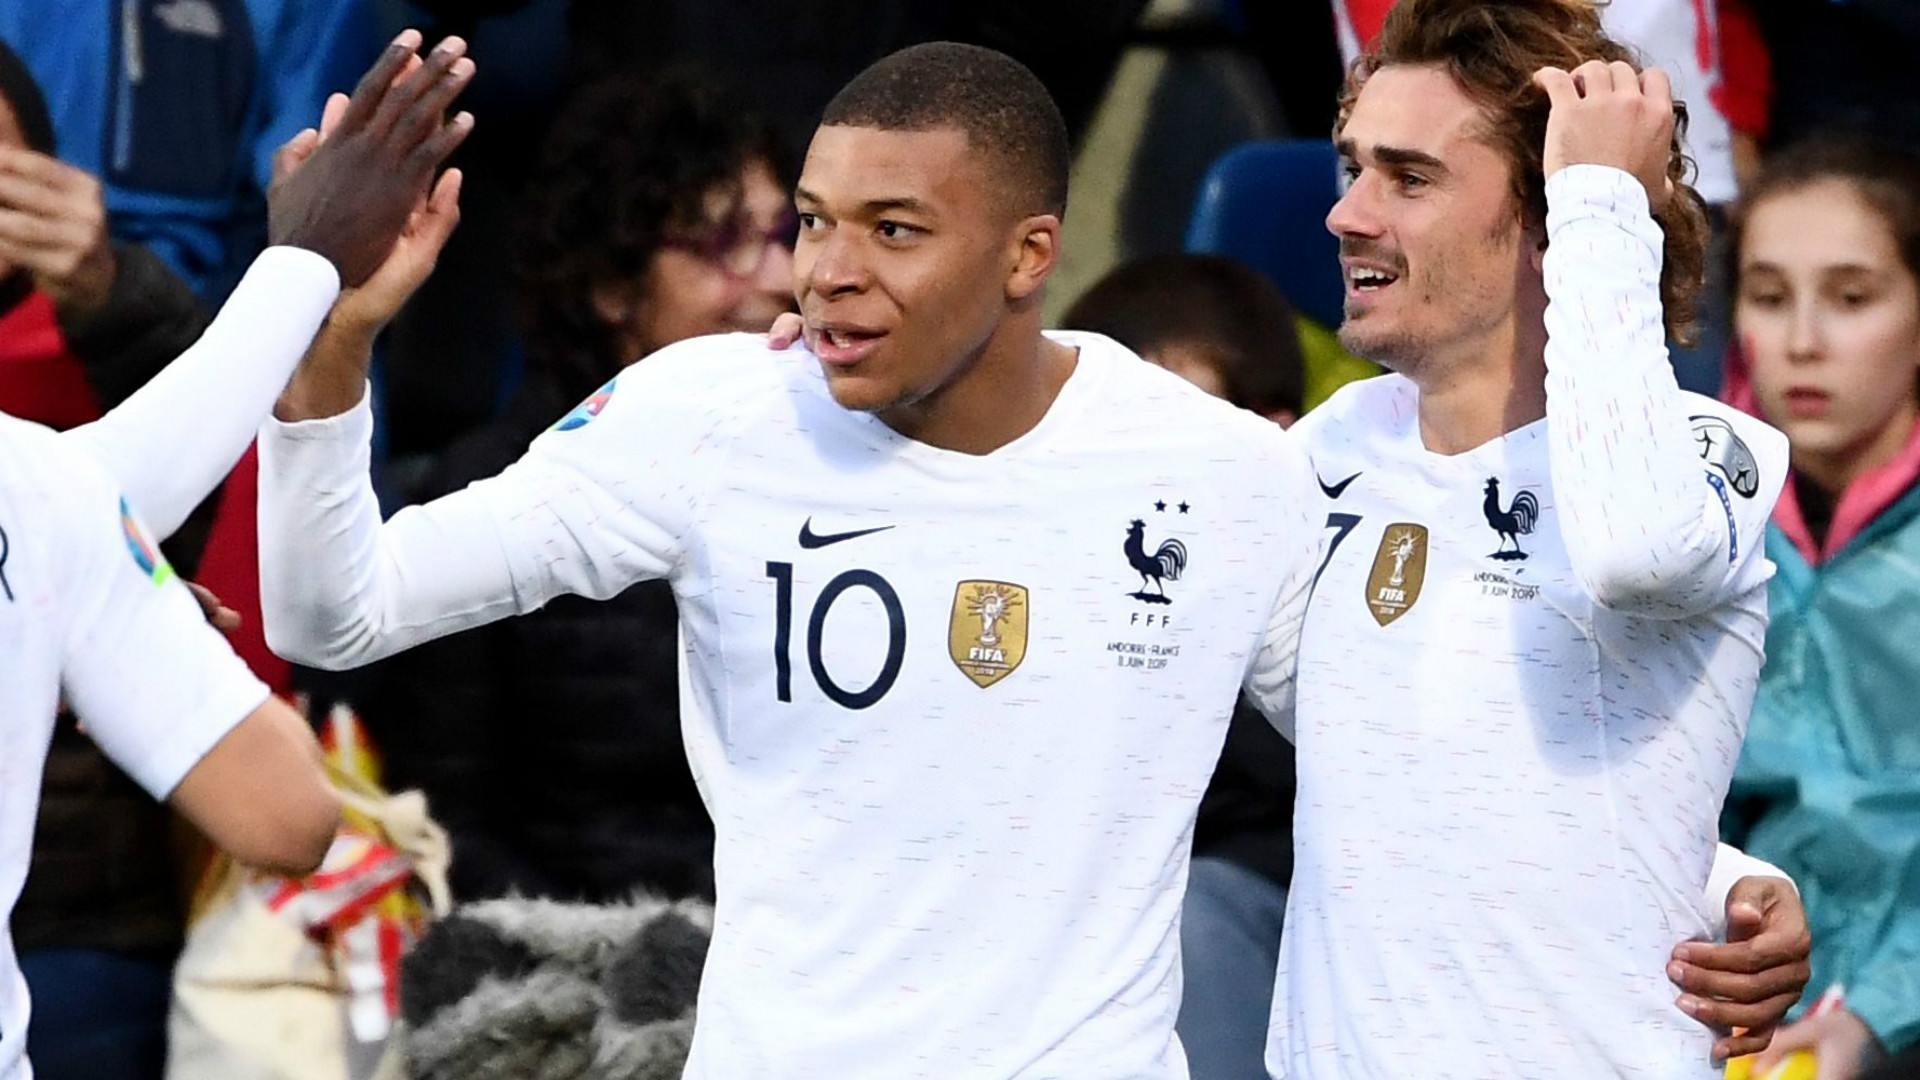 Now's not the time! Mbappe not ready to talk about Madrid links as rumours swirl